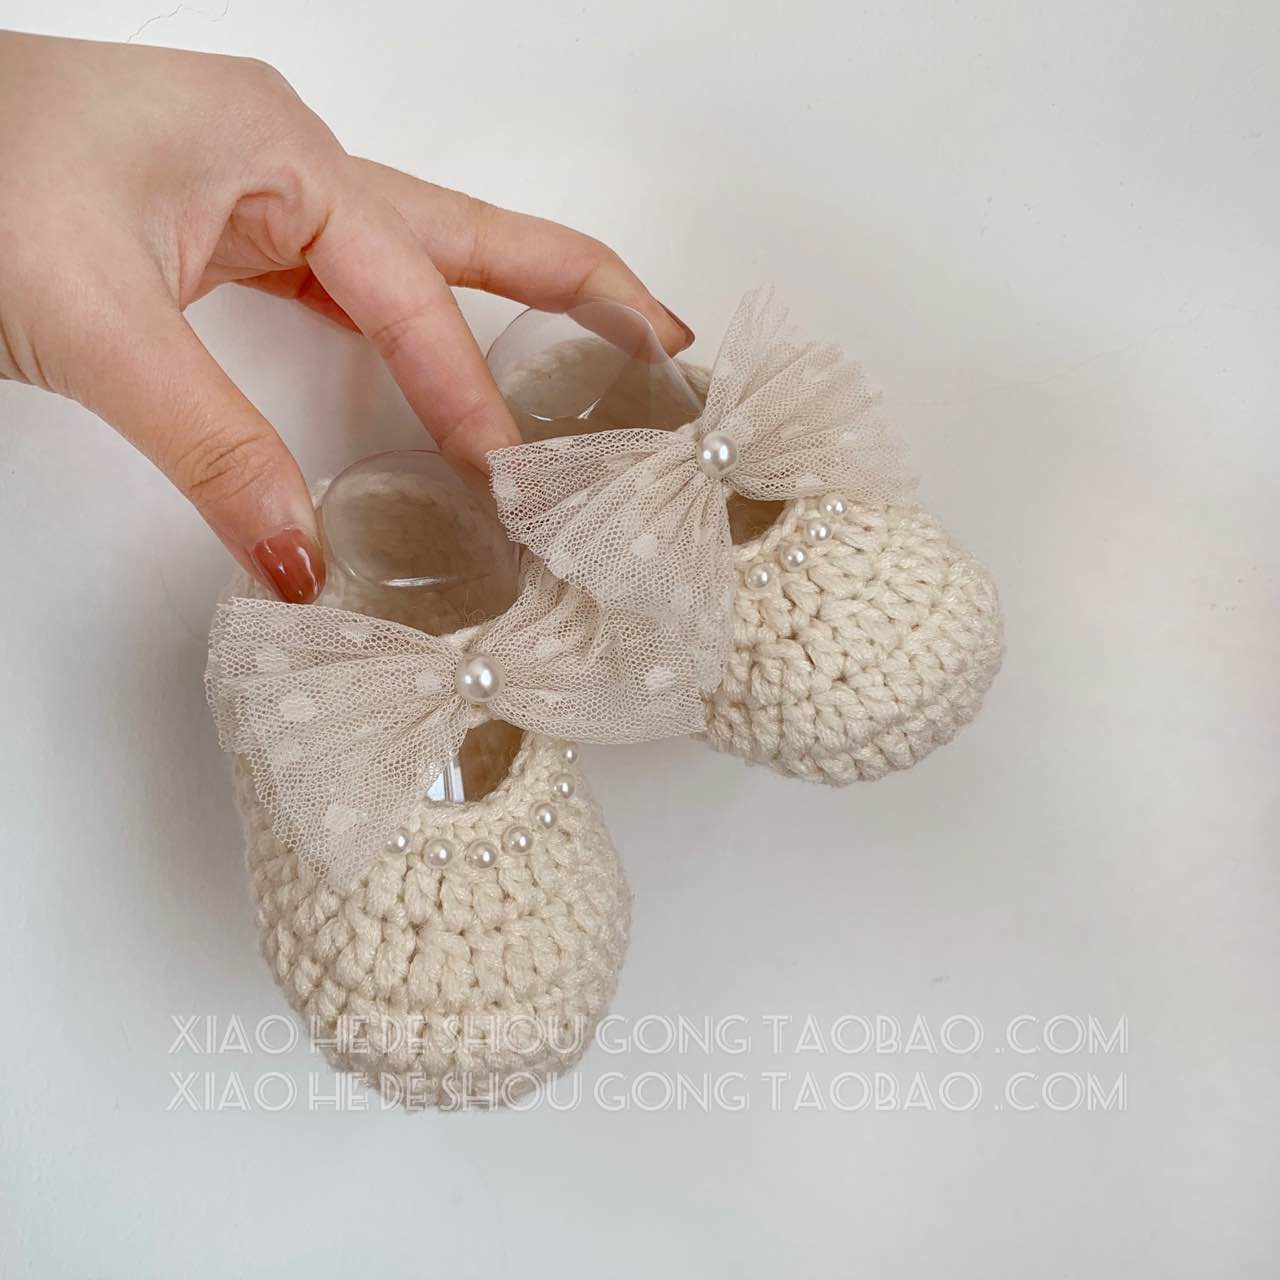 Handmade Crochet Baby Shoes Lace Mesh Bow Baby Shoes Female Cute Princess Shoes Hundred Days Full Moon Banquet Finished Products